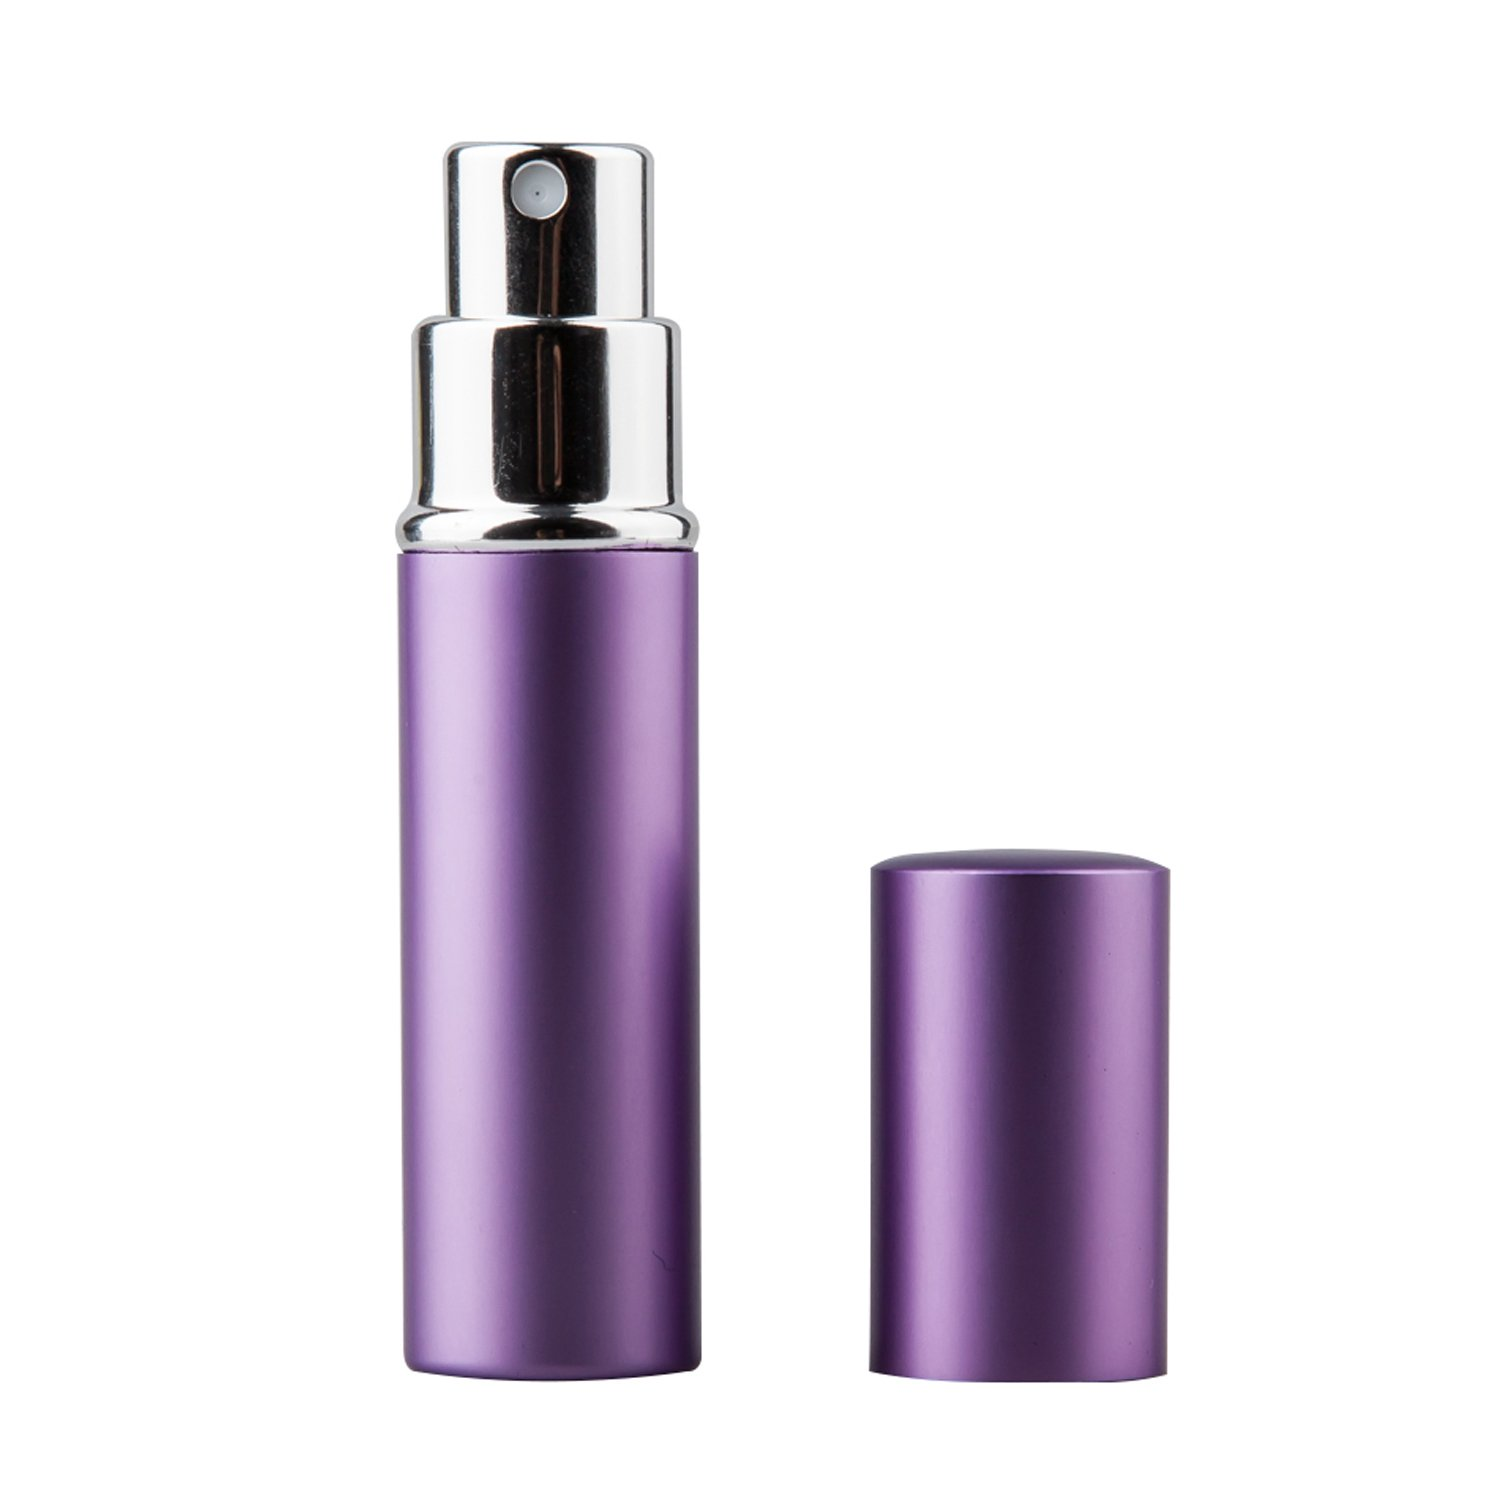 TRIXES 5ml Easy Fill Travel Perfume Aftershave Atomiser Spray Bottle Purple PP03